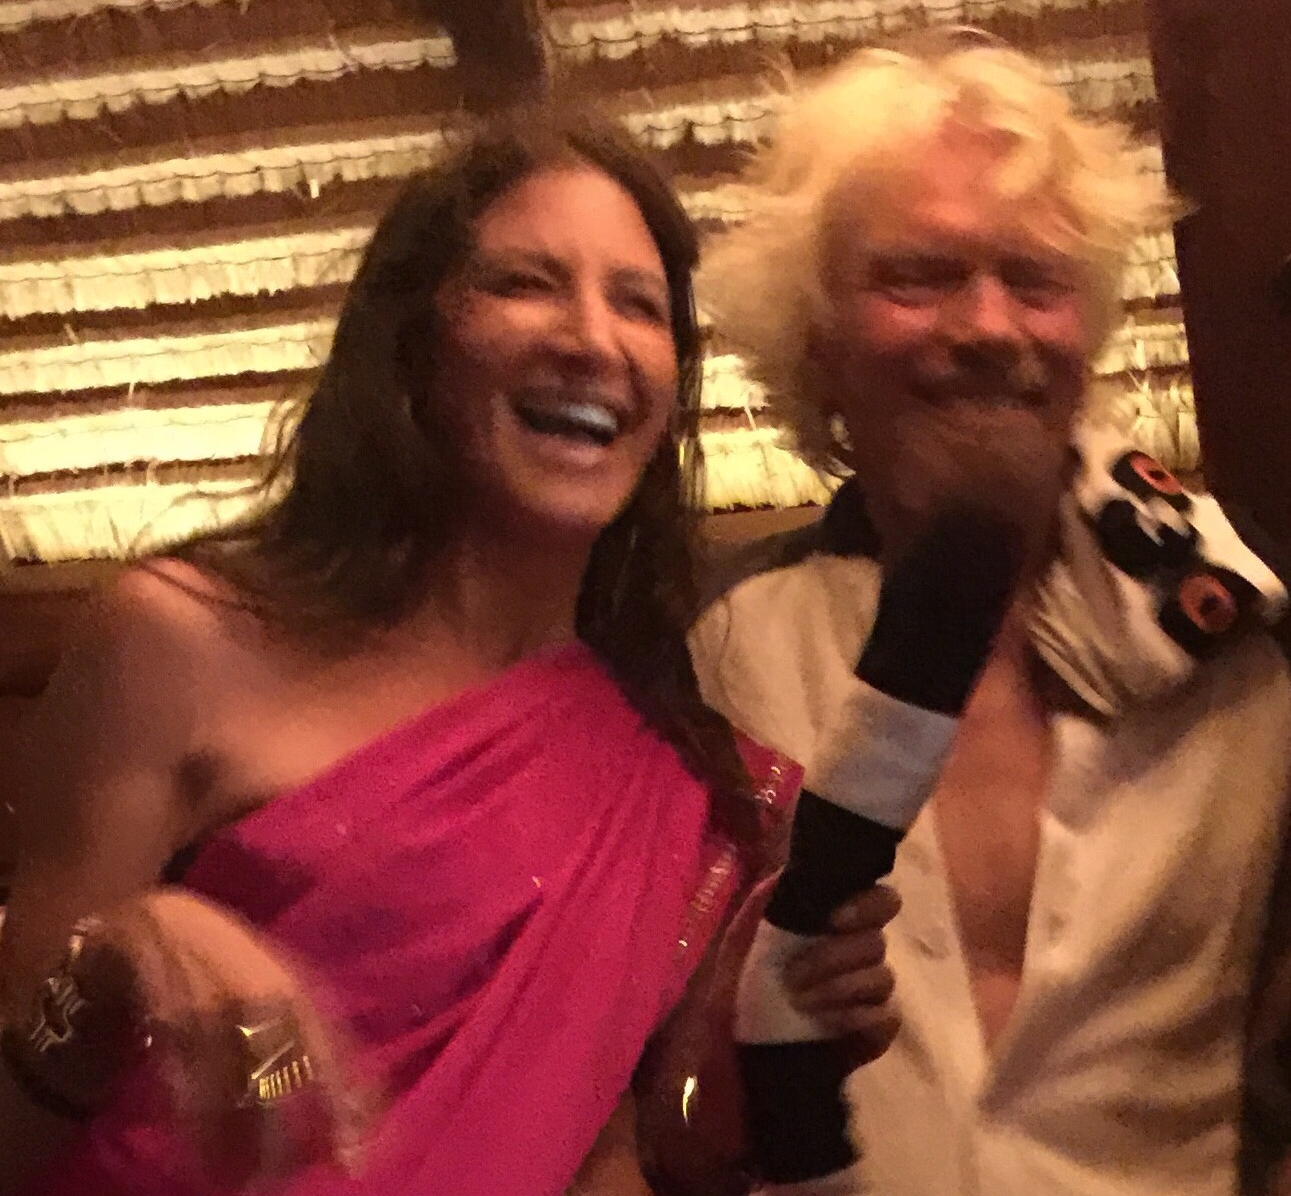 Necker Island, EO Weekend Event, where all the big ideas happen! Right to left:  Tami Holzman (Me) and Sir Richard Branson, Founder and Chairman of The Virgin Group